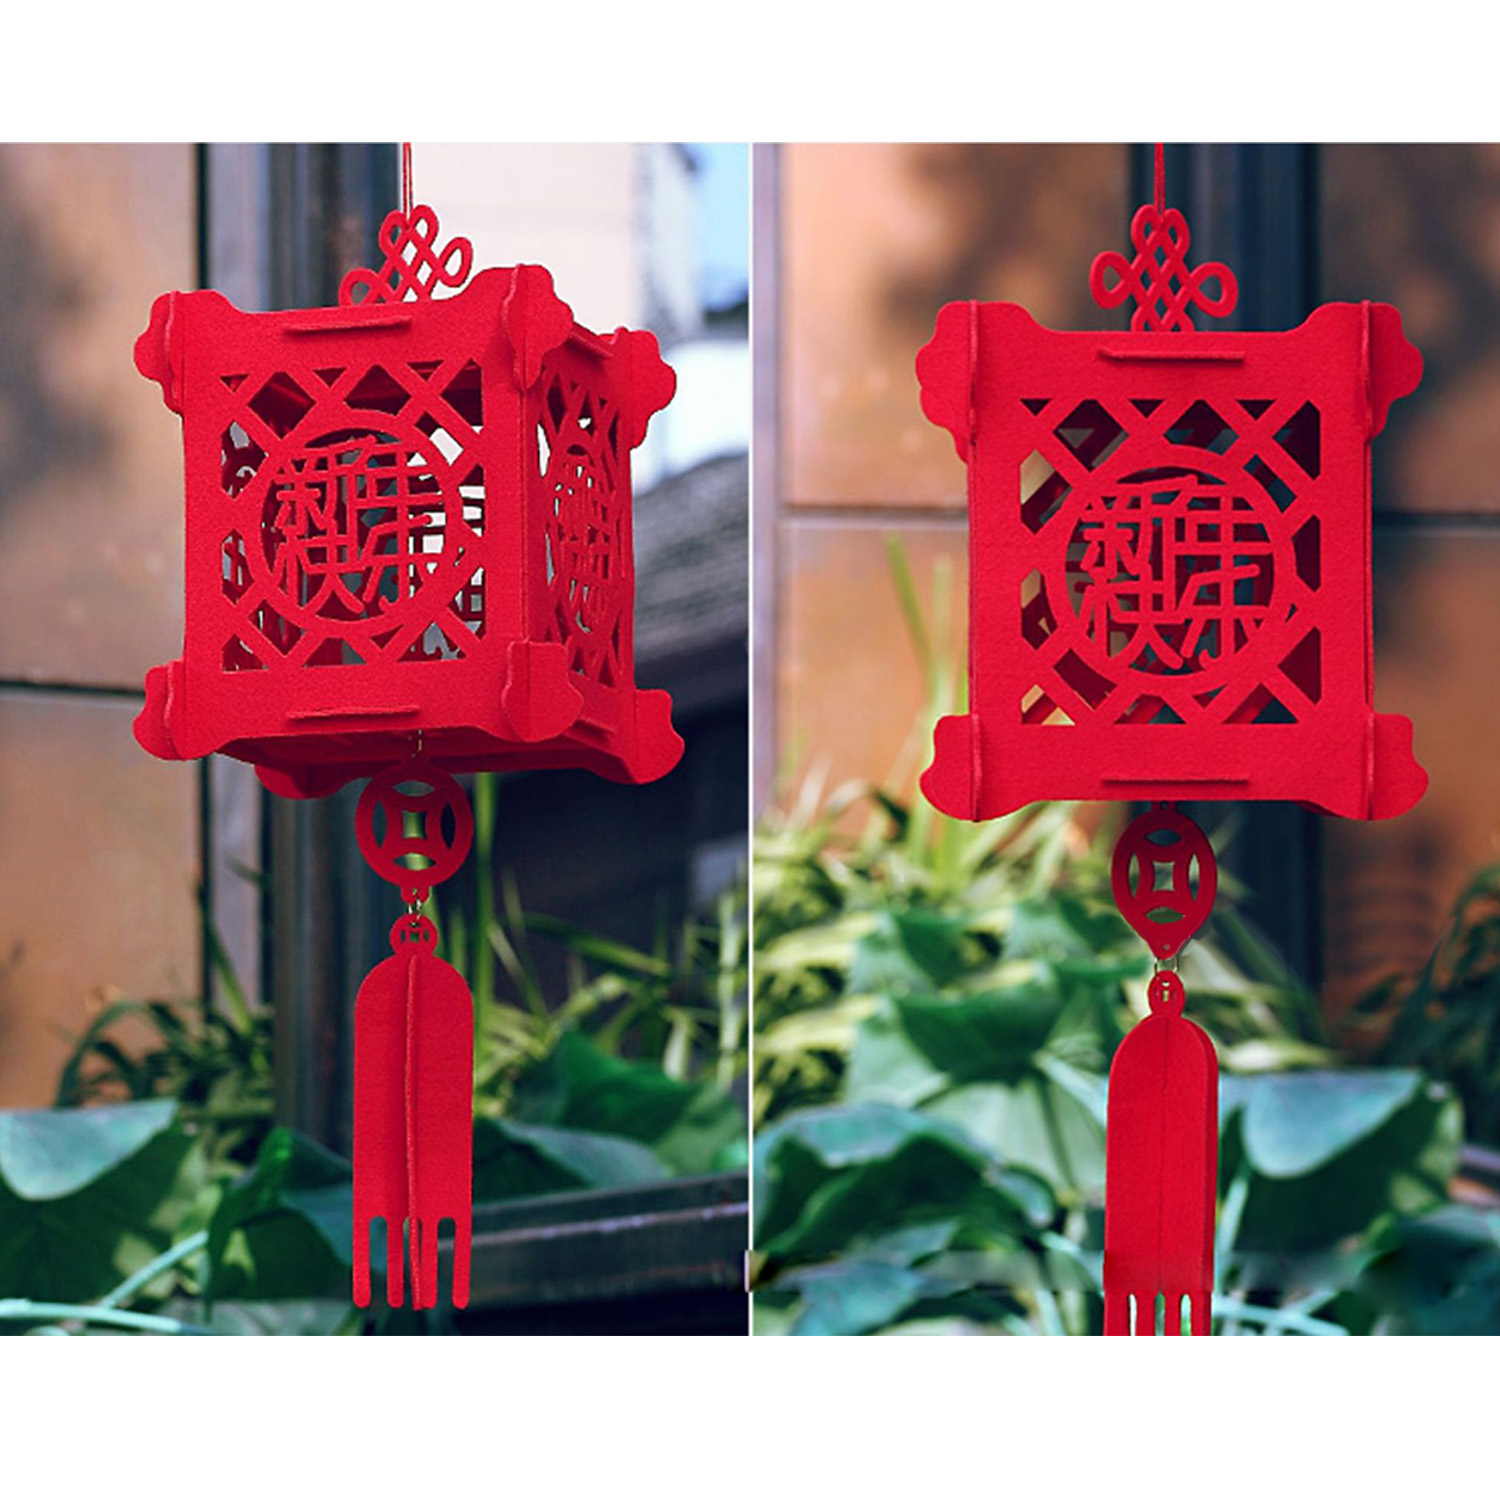 Behogar Fashion 3D Hollow out Non woven Red Lantern ...